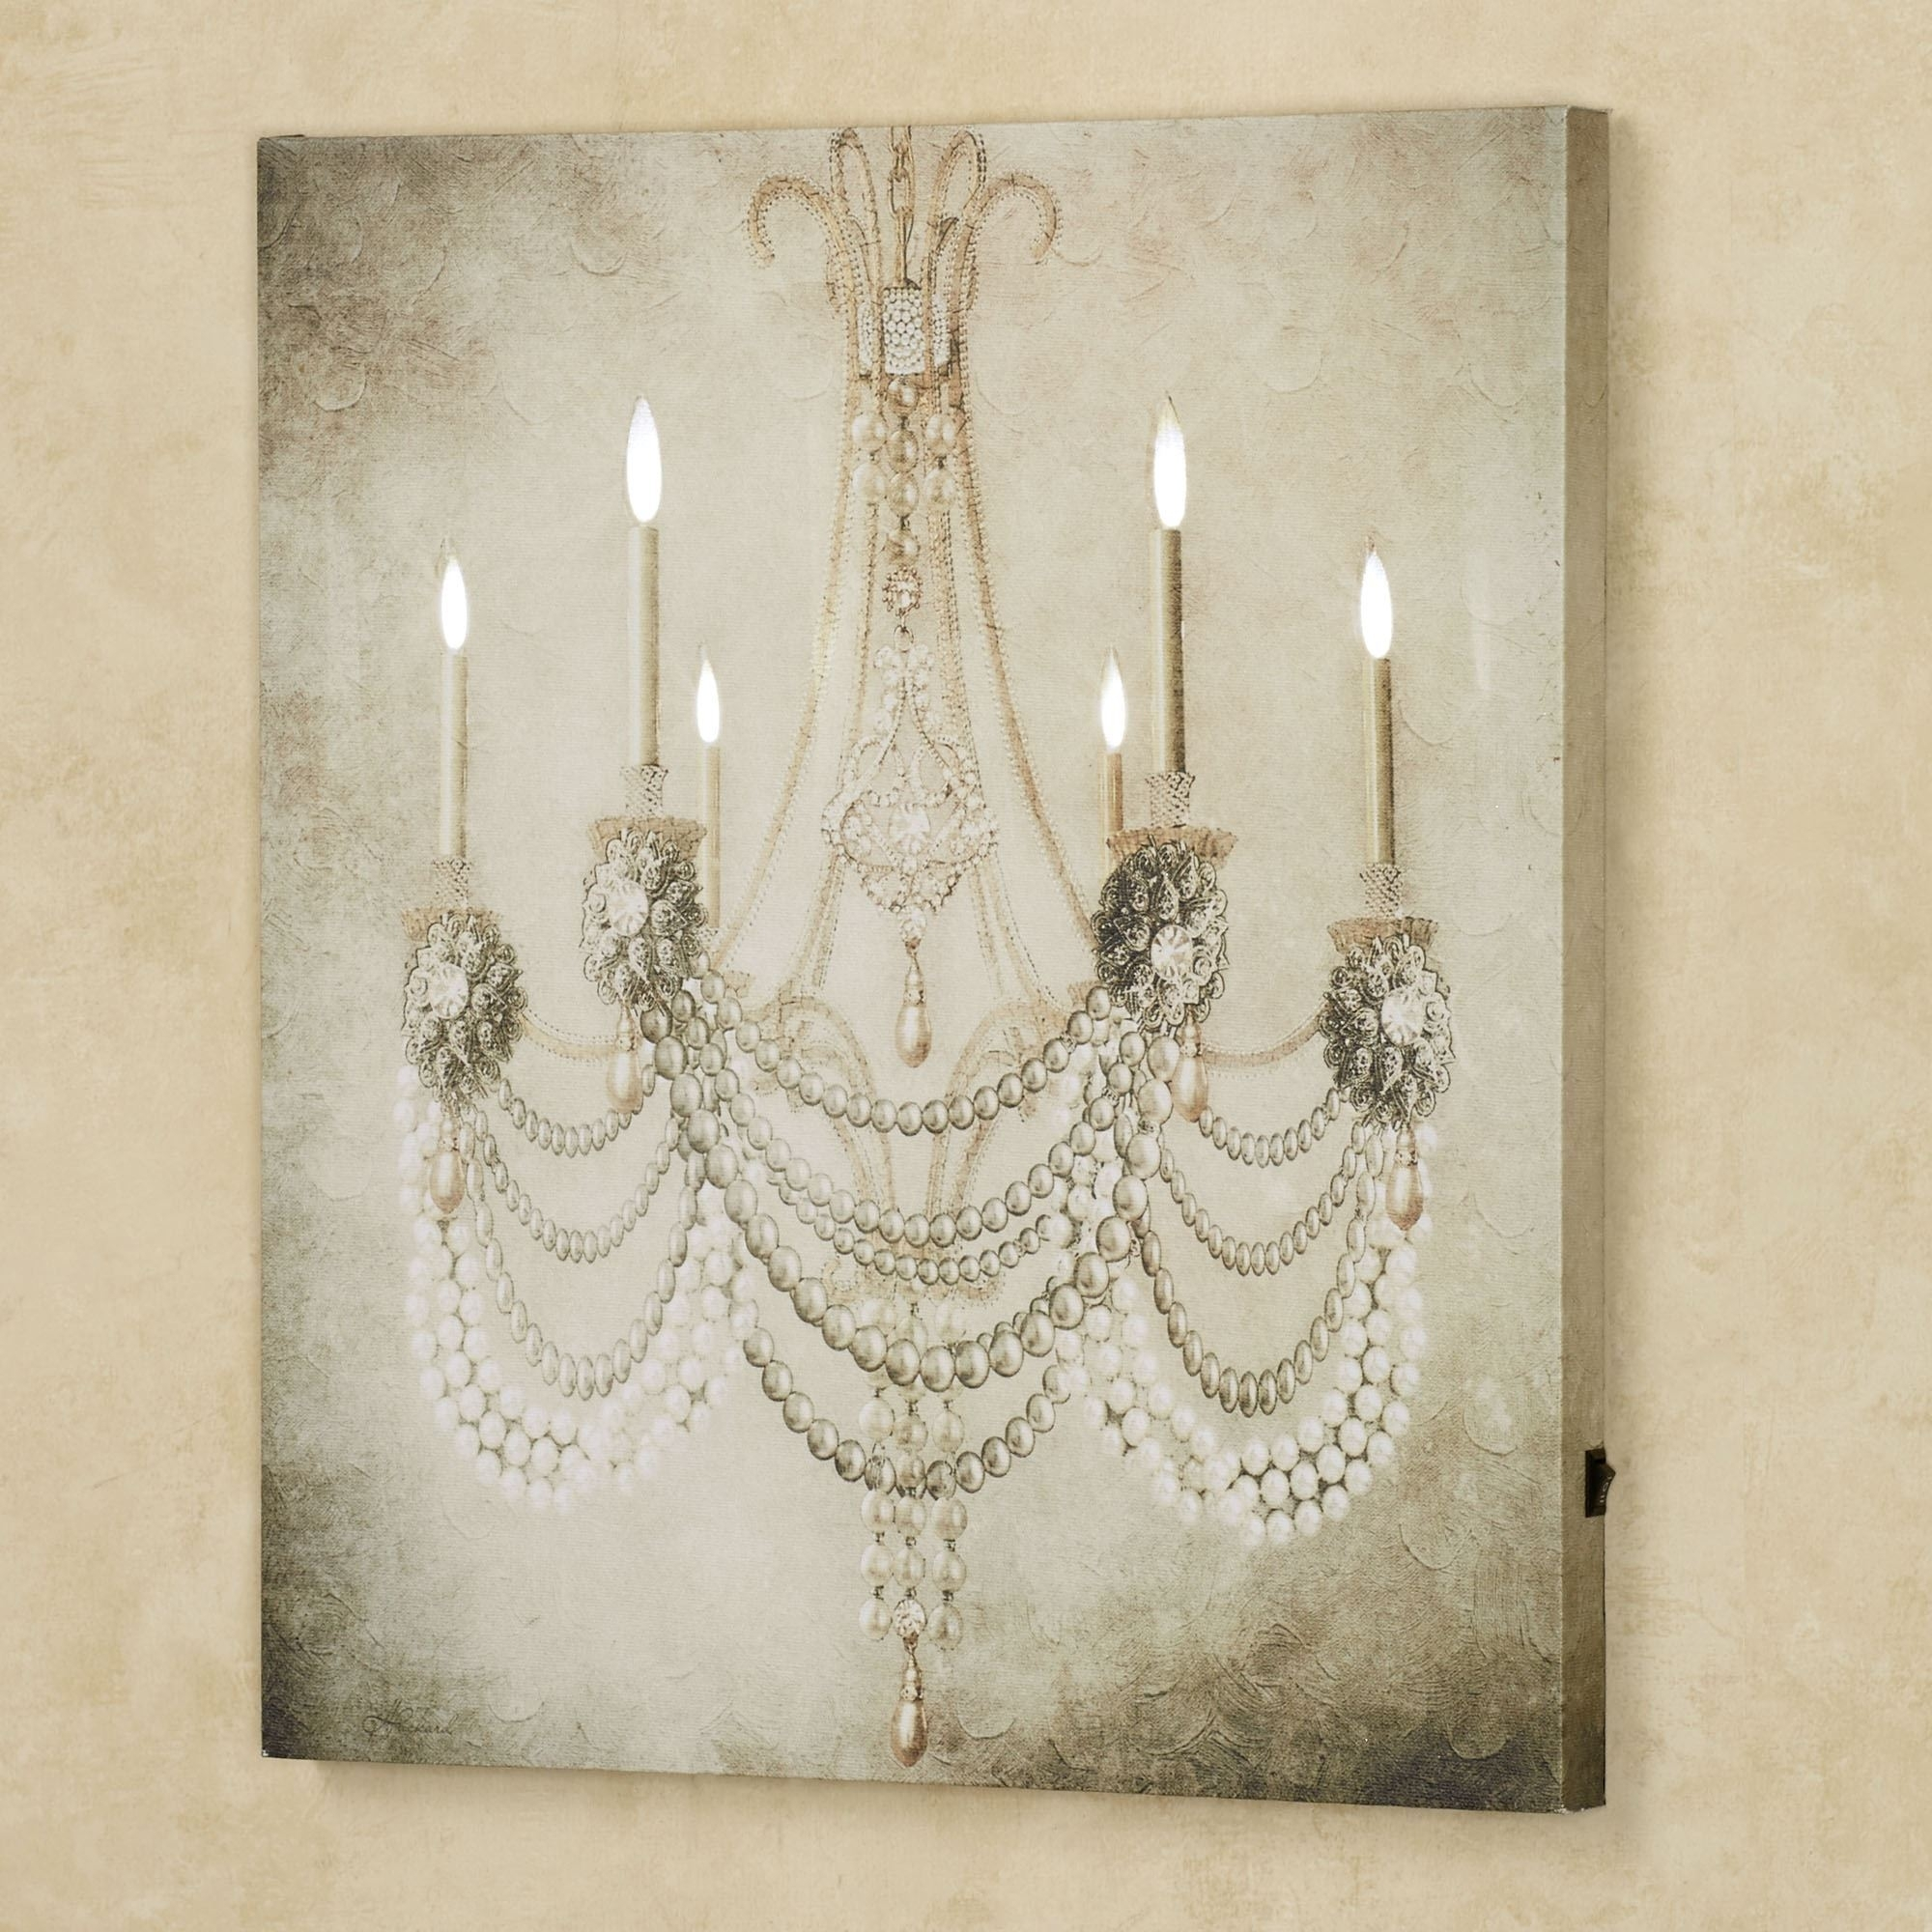 Vintage Chandelier Led Lighted Canvas Art Throughout Most Recently Released Grey Canvas Wall Art (View 13 of 15)